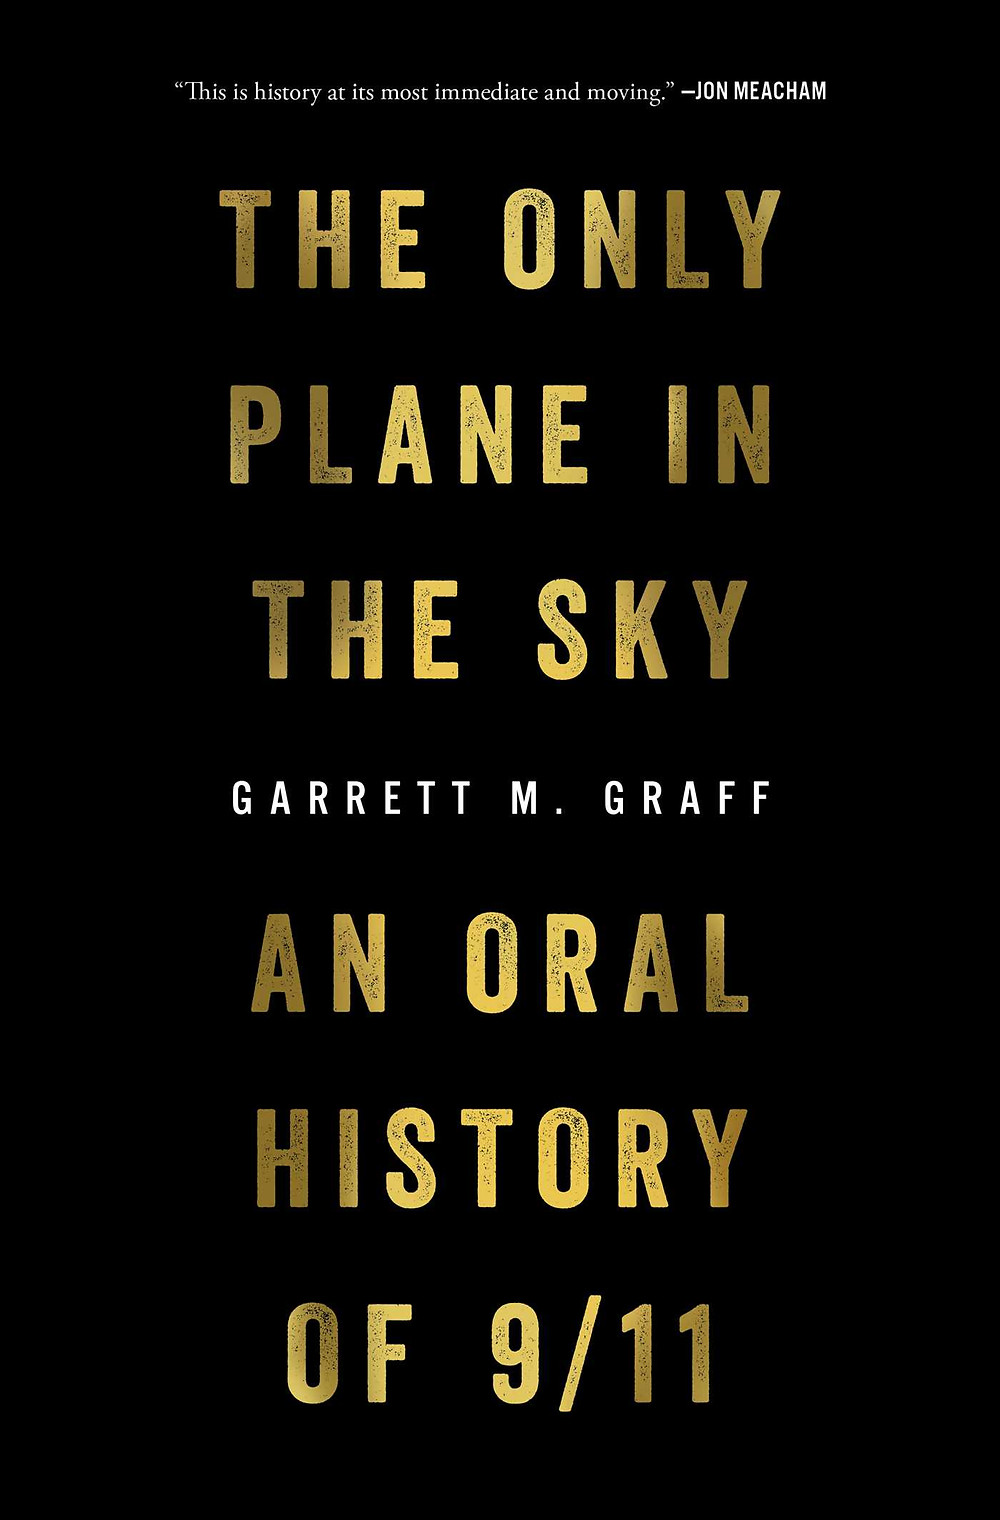 book cover of Garrett M. Graff's The Only Plane in the Sky: An Oral History of 9/11